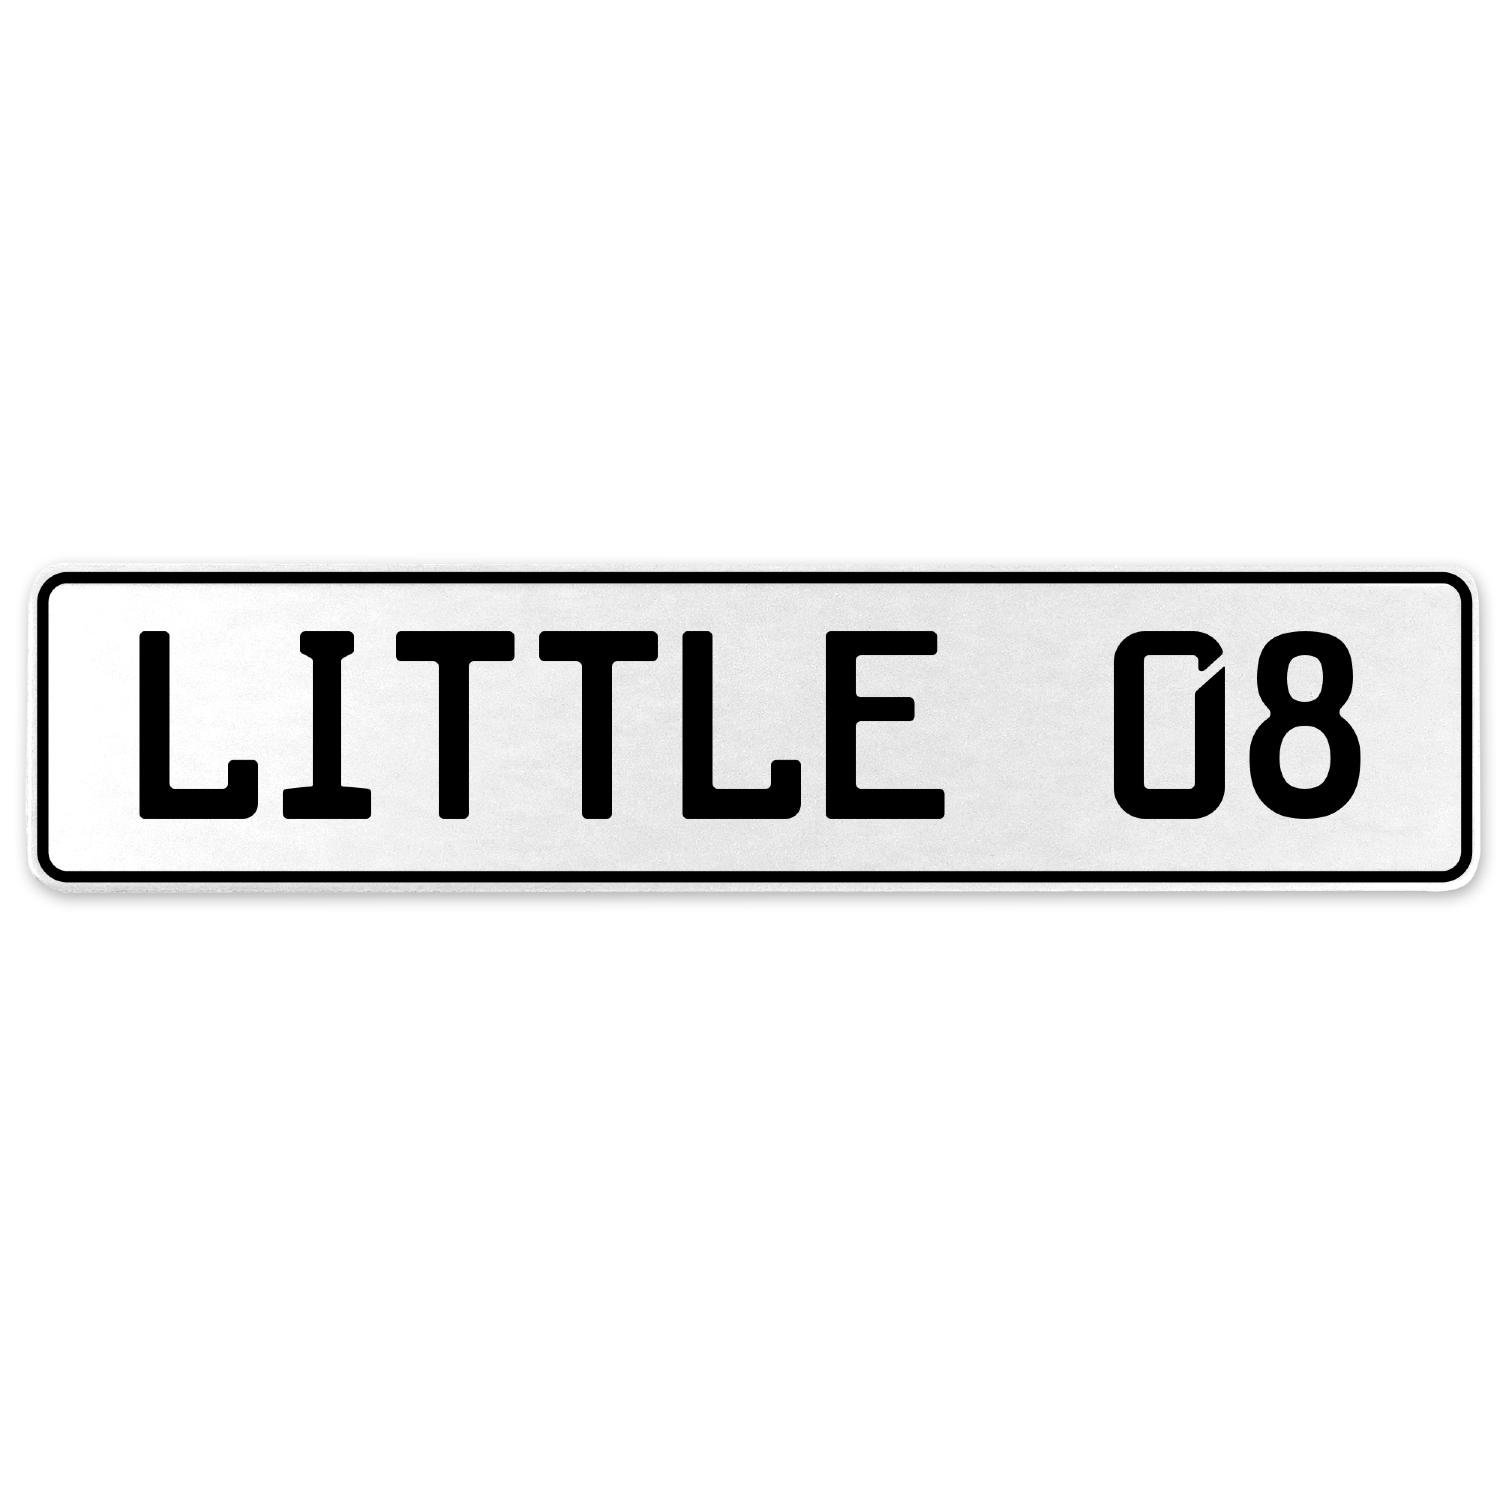 Vintage Parts 556288 Little 08 White Stamped Aluminum European License Plate